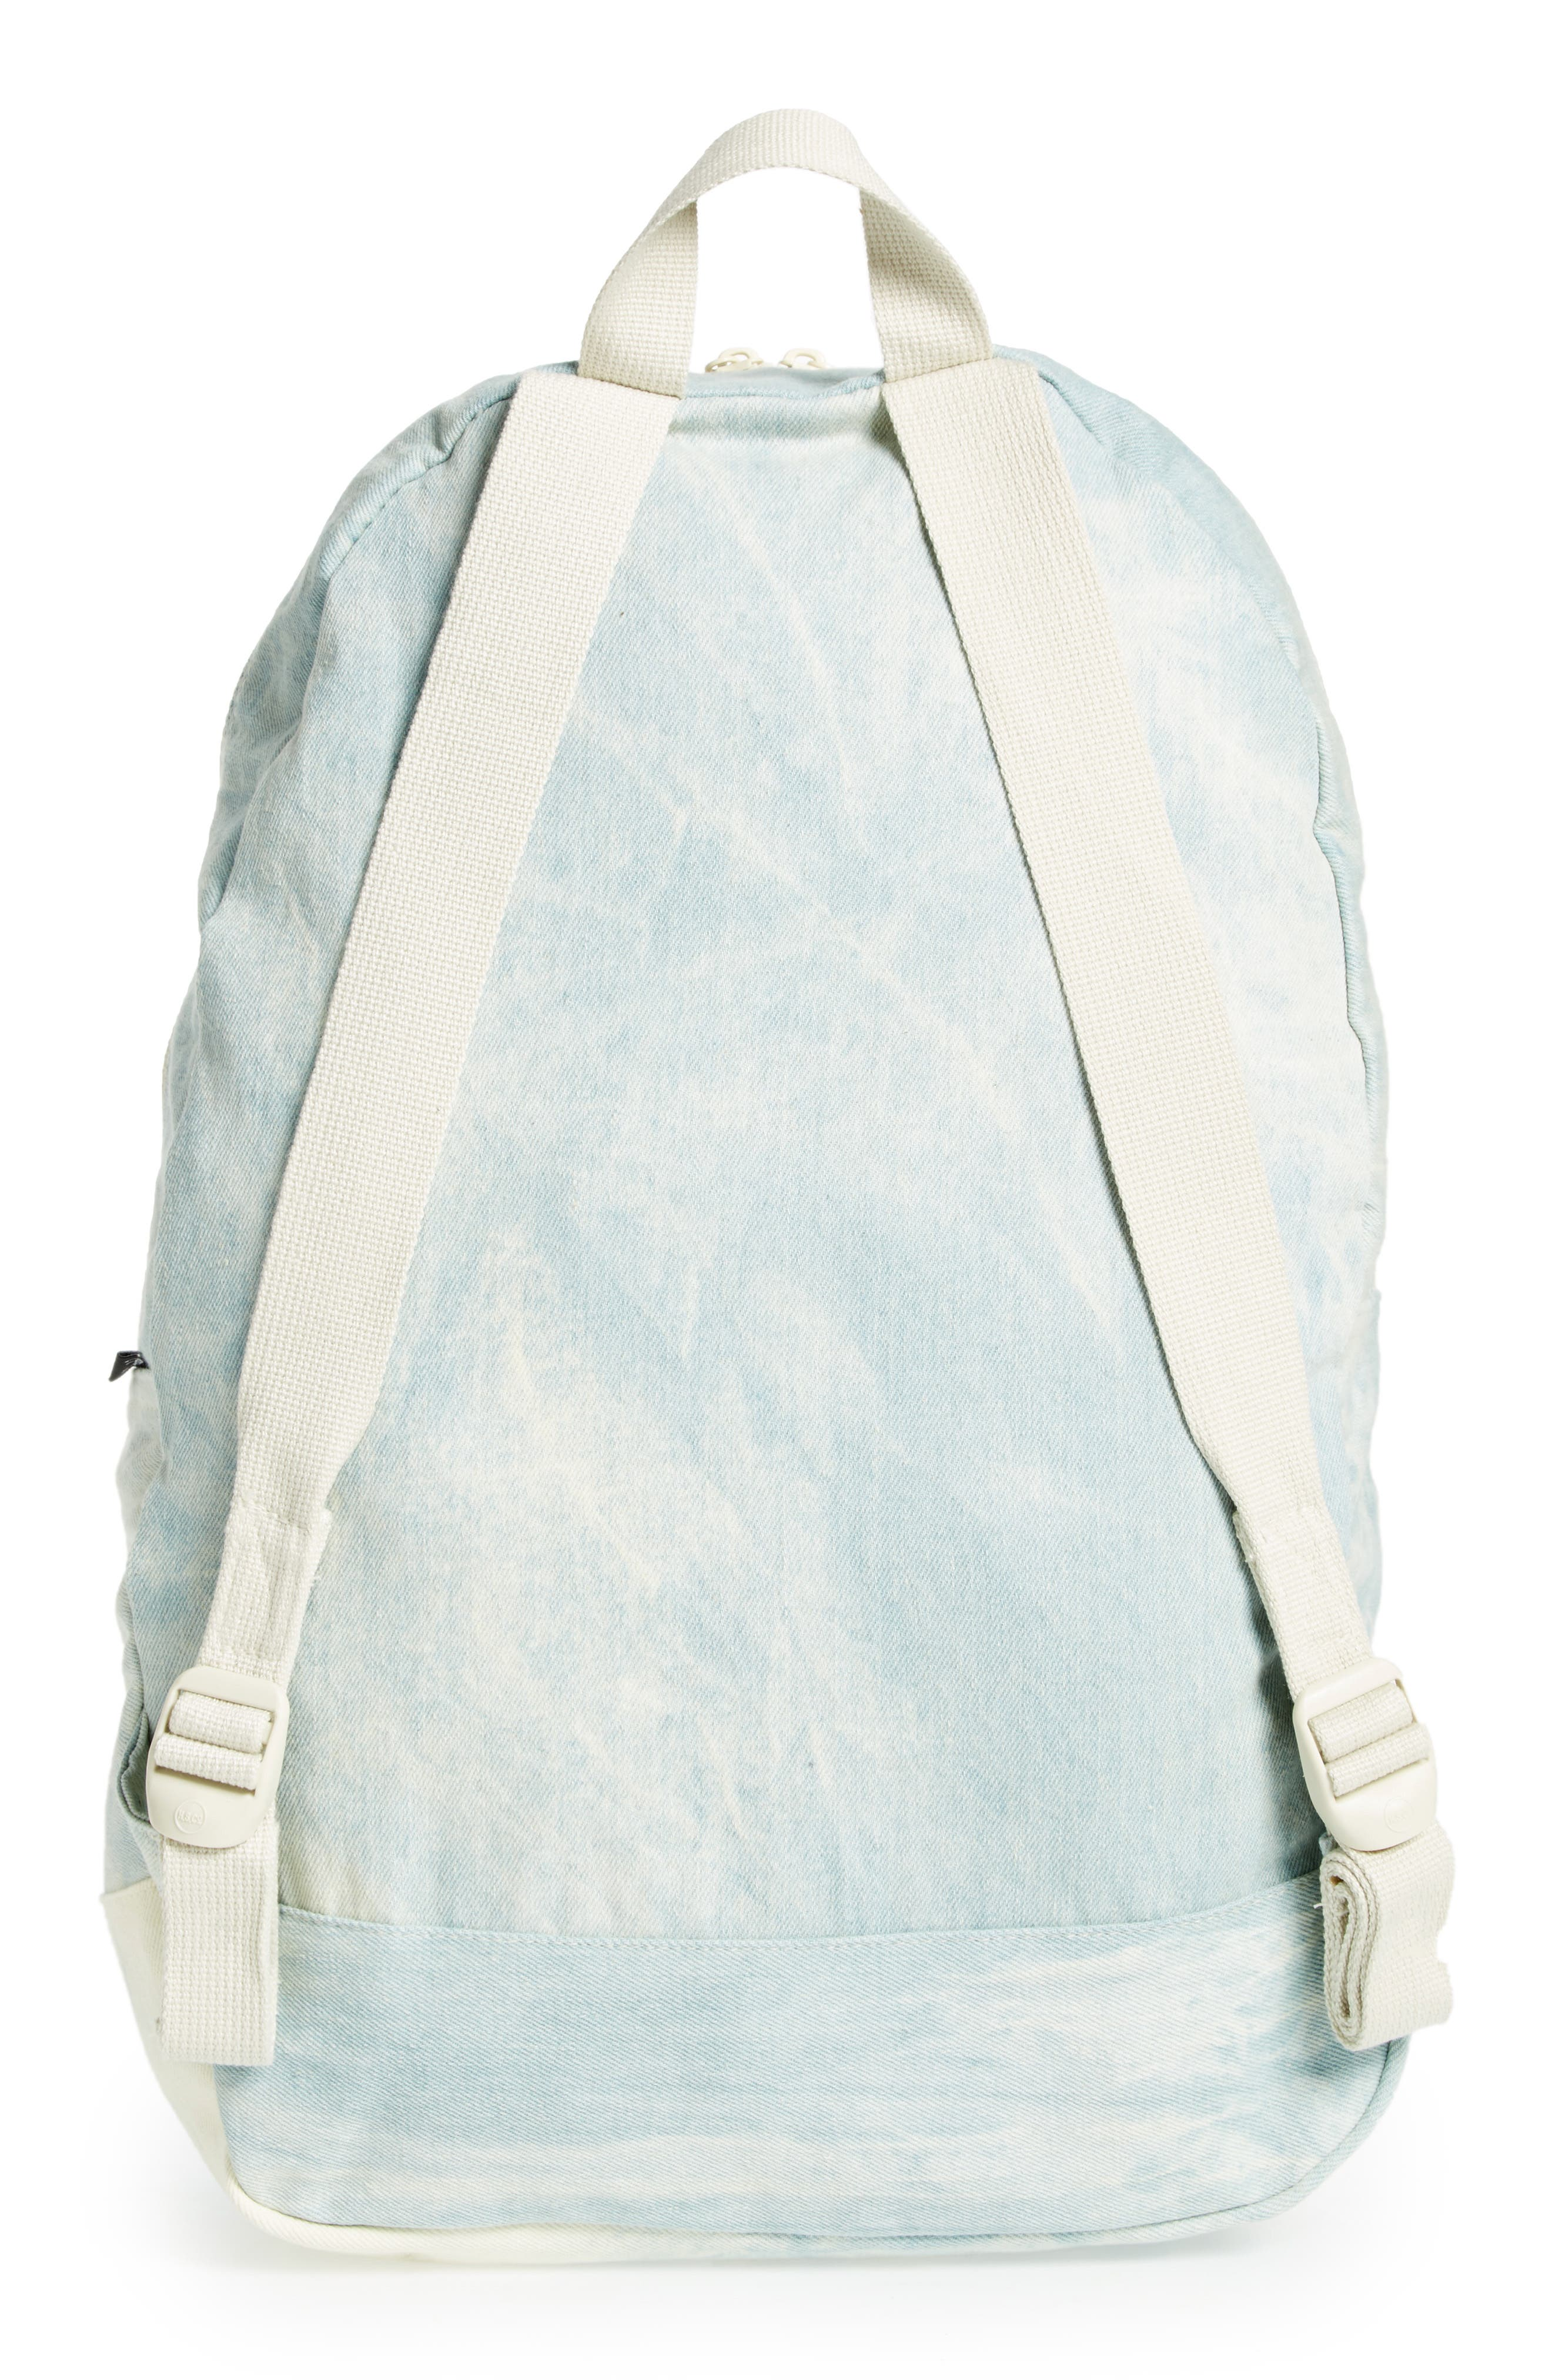 Cotton Casuals Daypack Backpack,                             Alternate thumbnail 26, color,